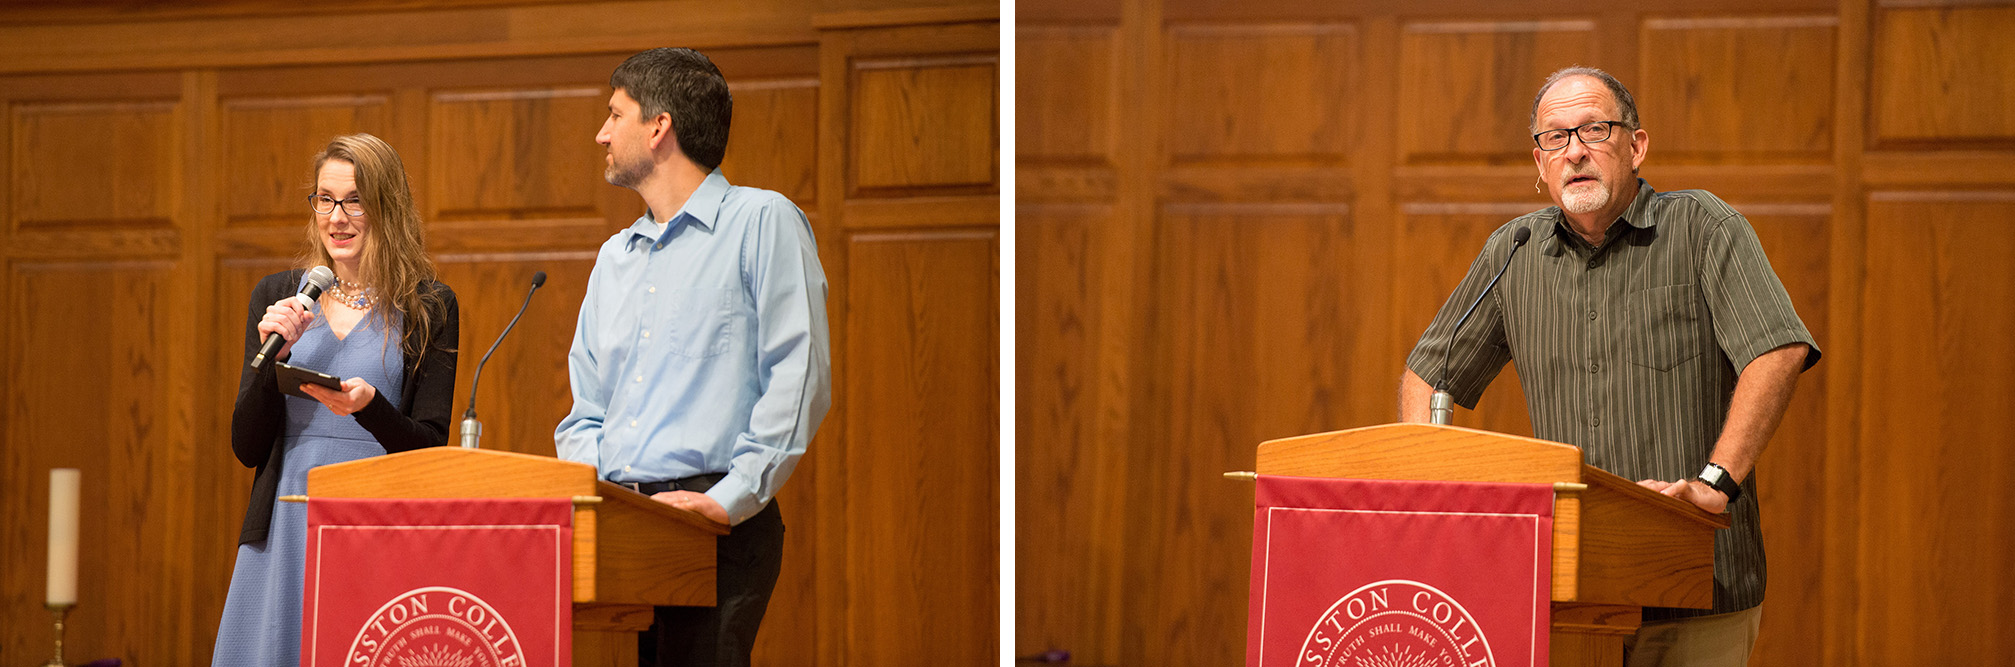 Erin Hershberger '10, faculty, and Brent Yoder '98, faculty, led worship and Mike Zehr '78 shared the morning message at the Homecoming Weekend worship service.